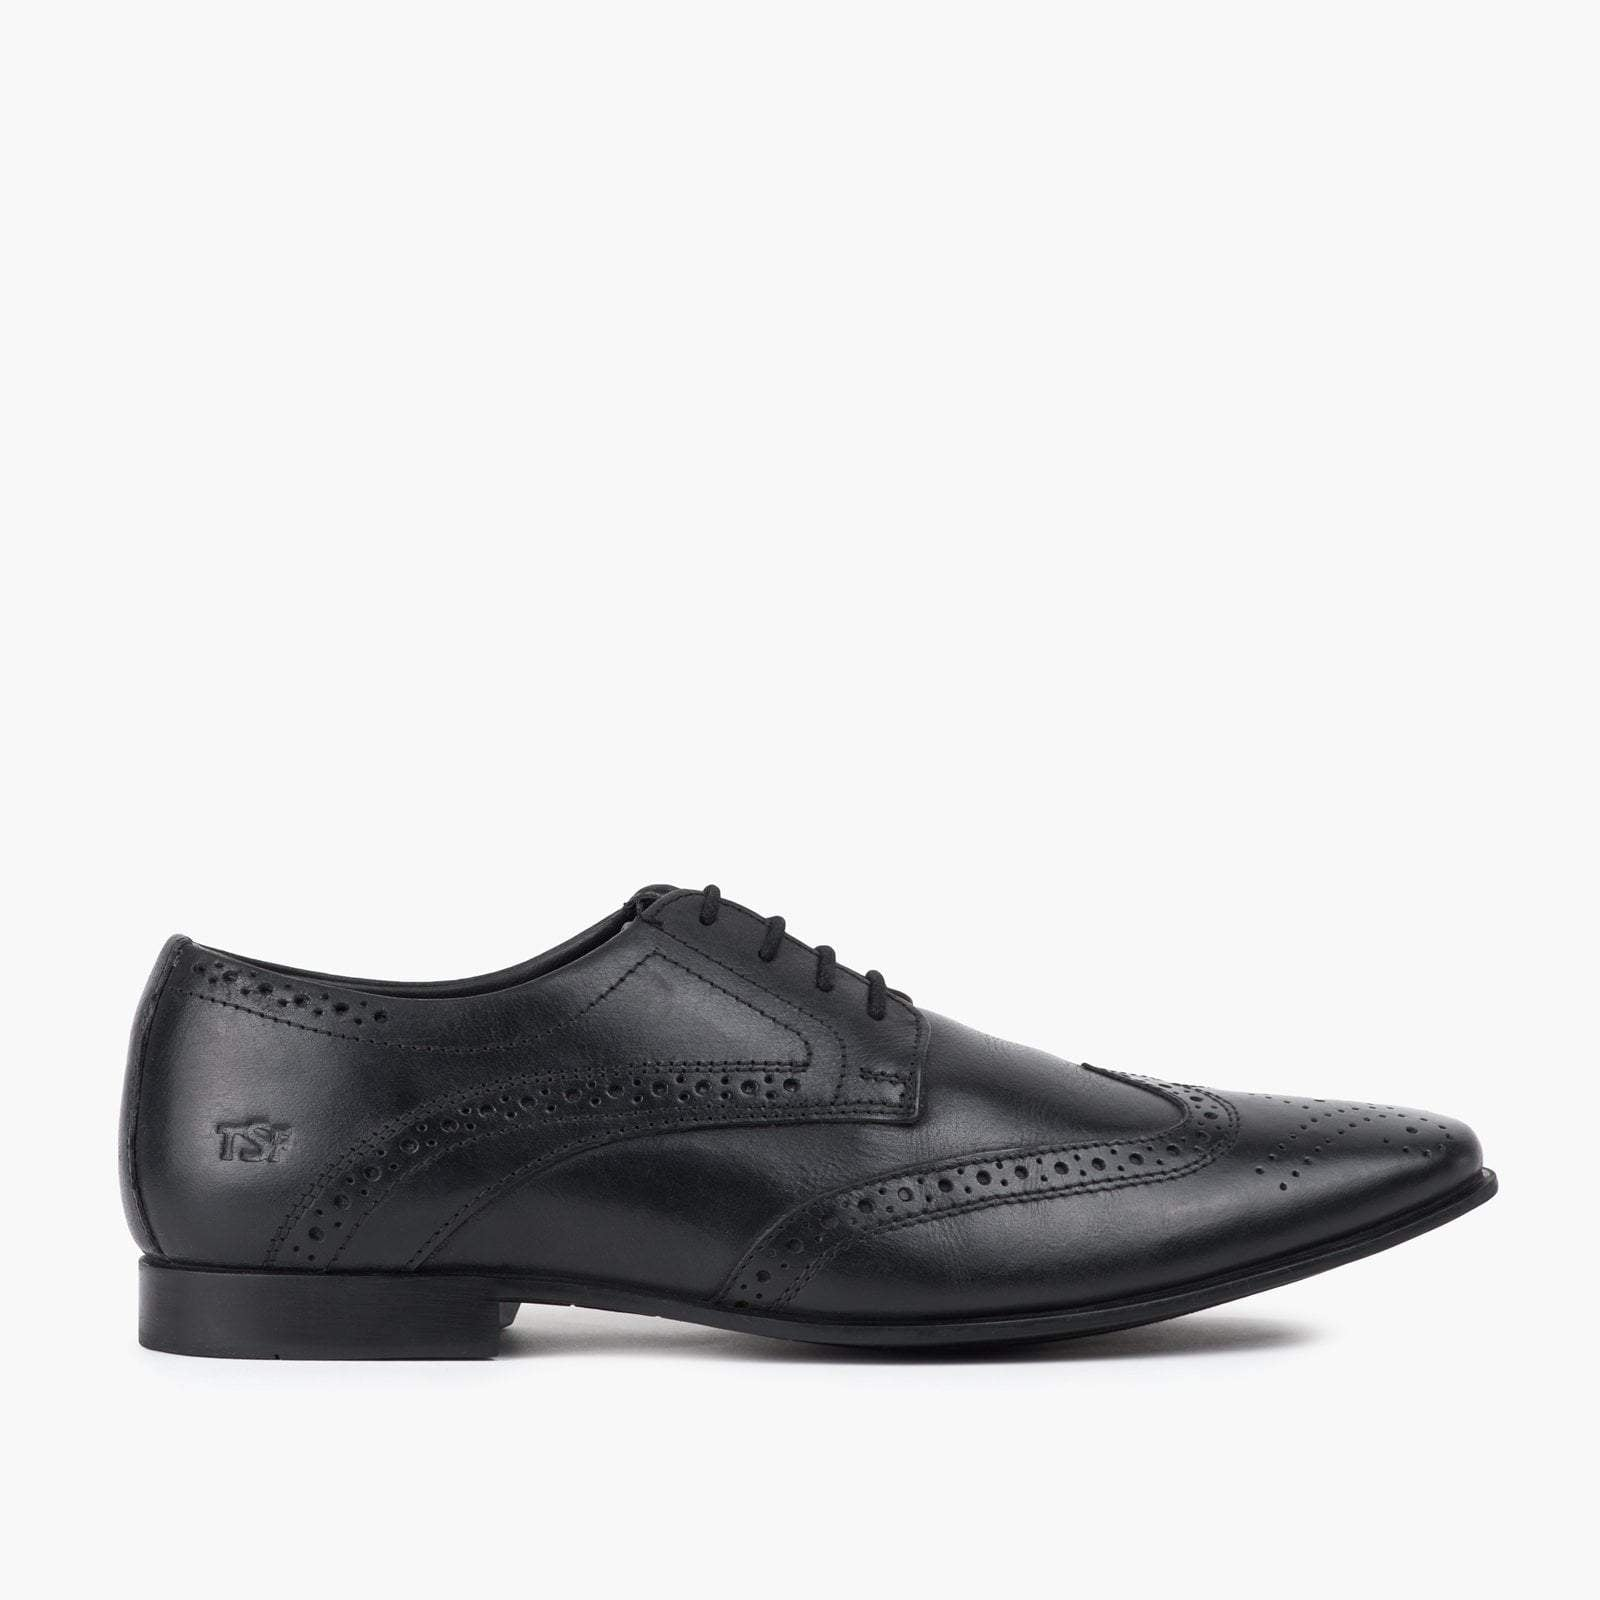 Redfoot Shoes Footwear UK 6 / EURO 39 / US 7 / Black / Leather MENS DERBY BROGUE BLACK